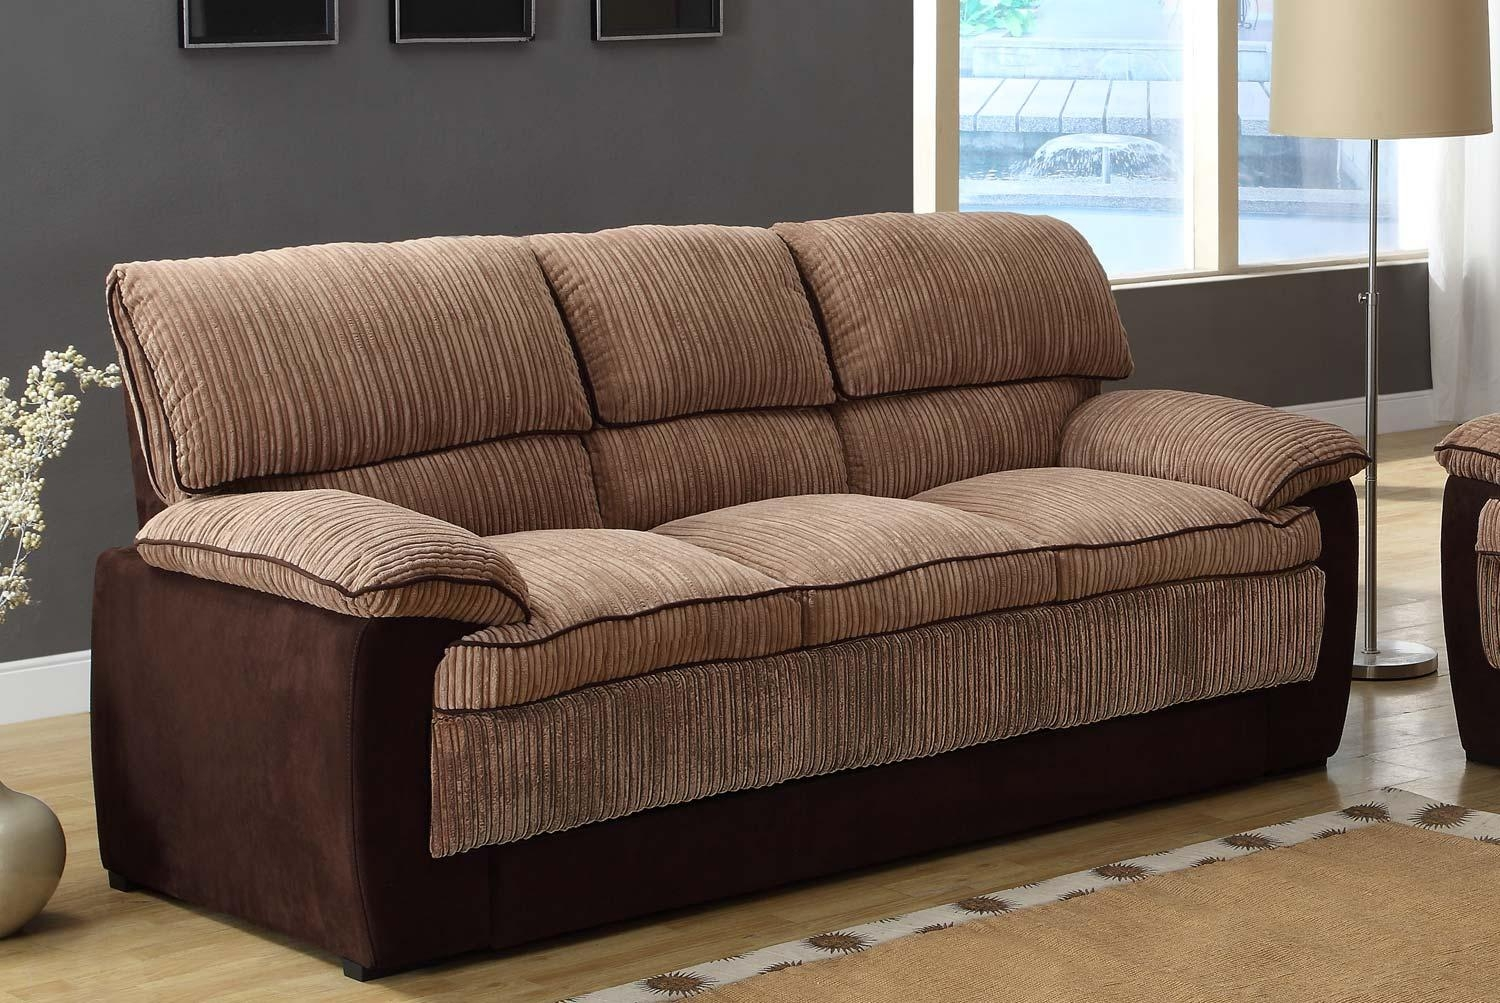 Homelegance Mccollum Sofa - Brown - Corduroy And Microfiber 9746-3 intended for Brown Corduroy Sofas